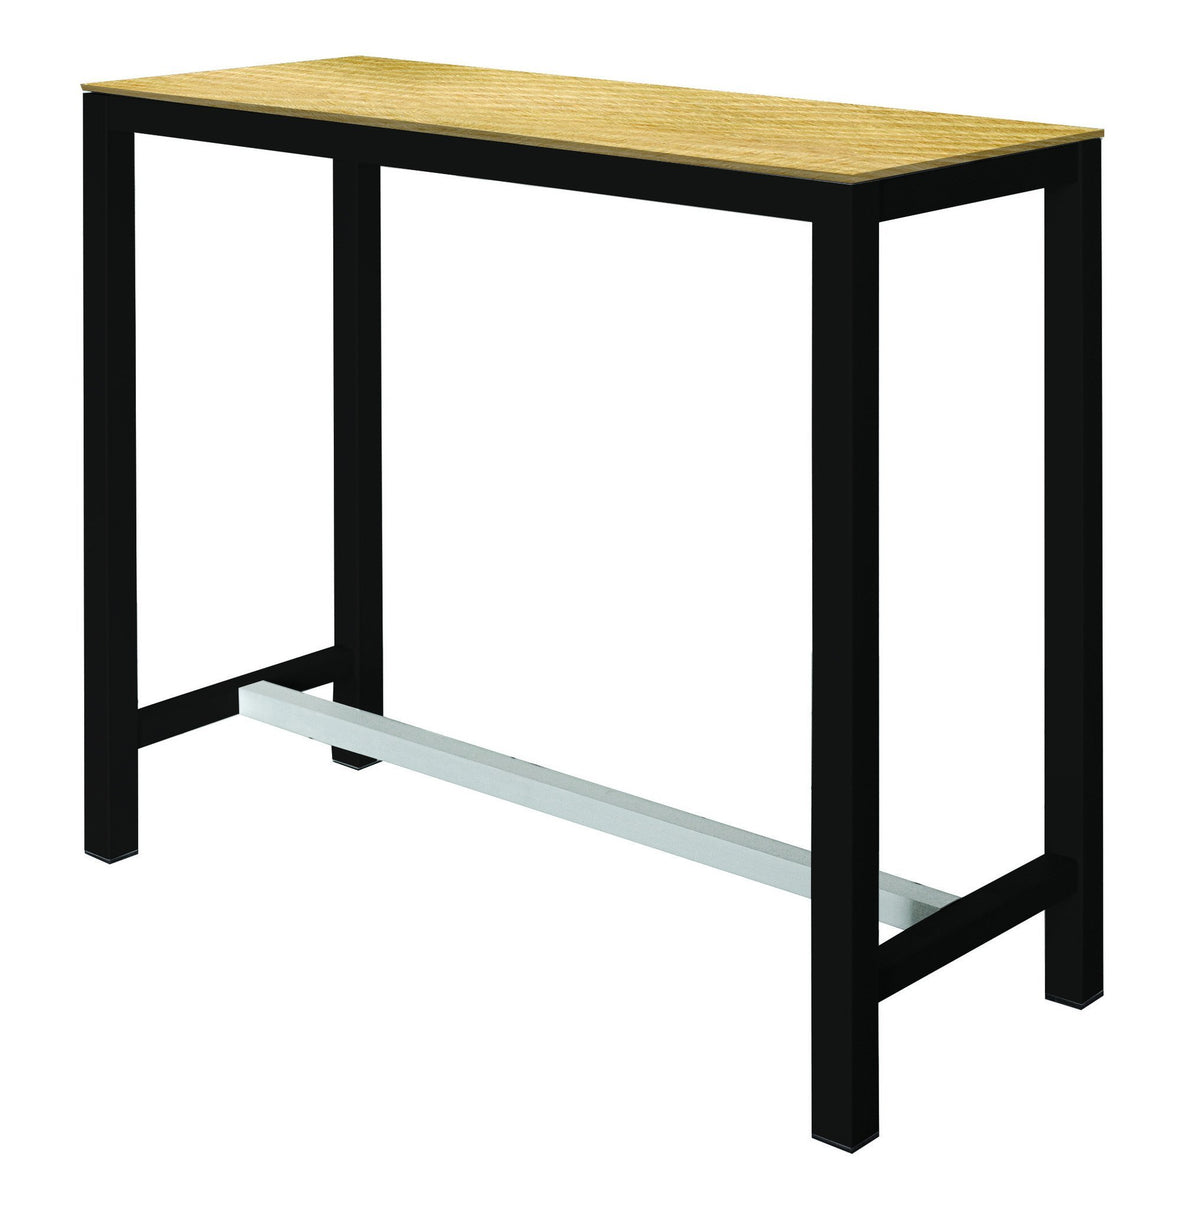 Banket Poseur Table-Gaber-Contract Furniture Store